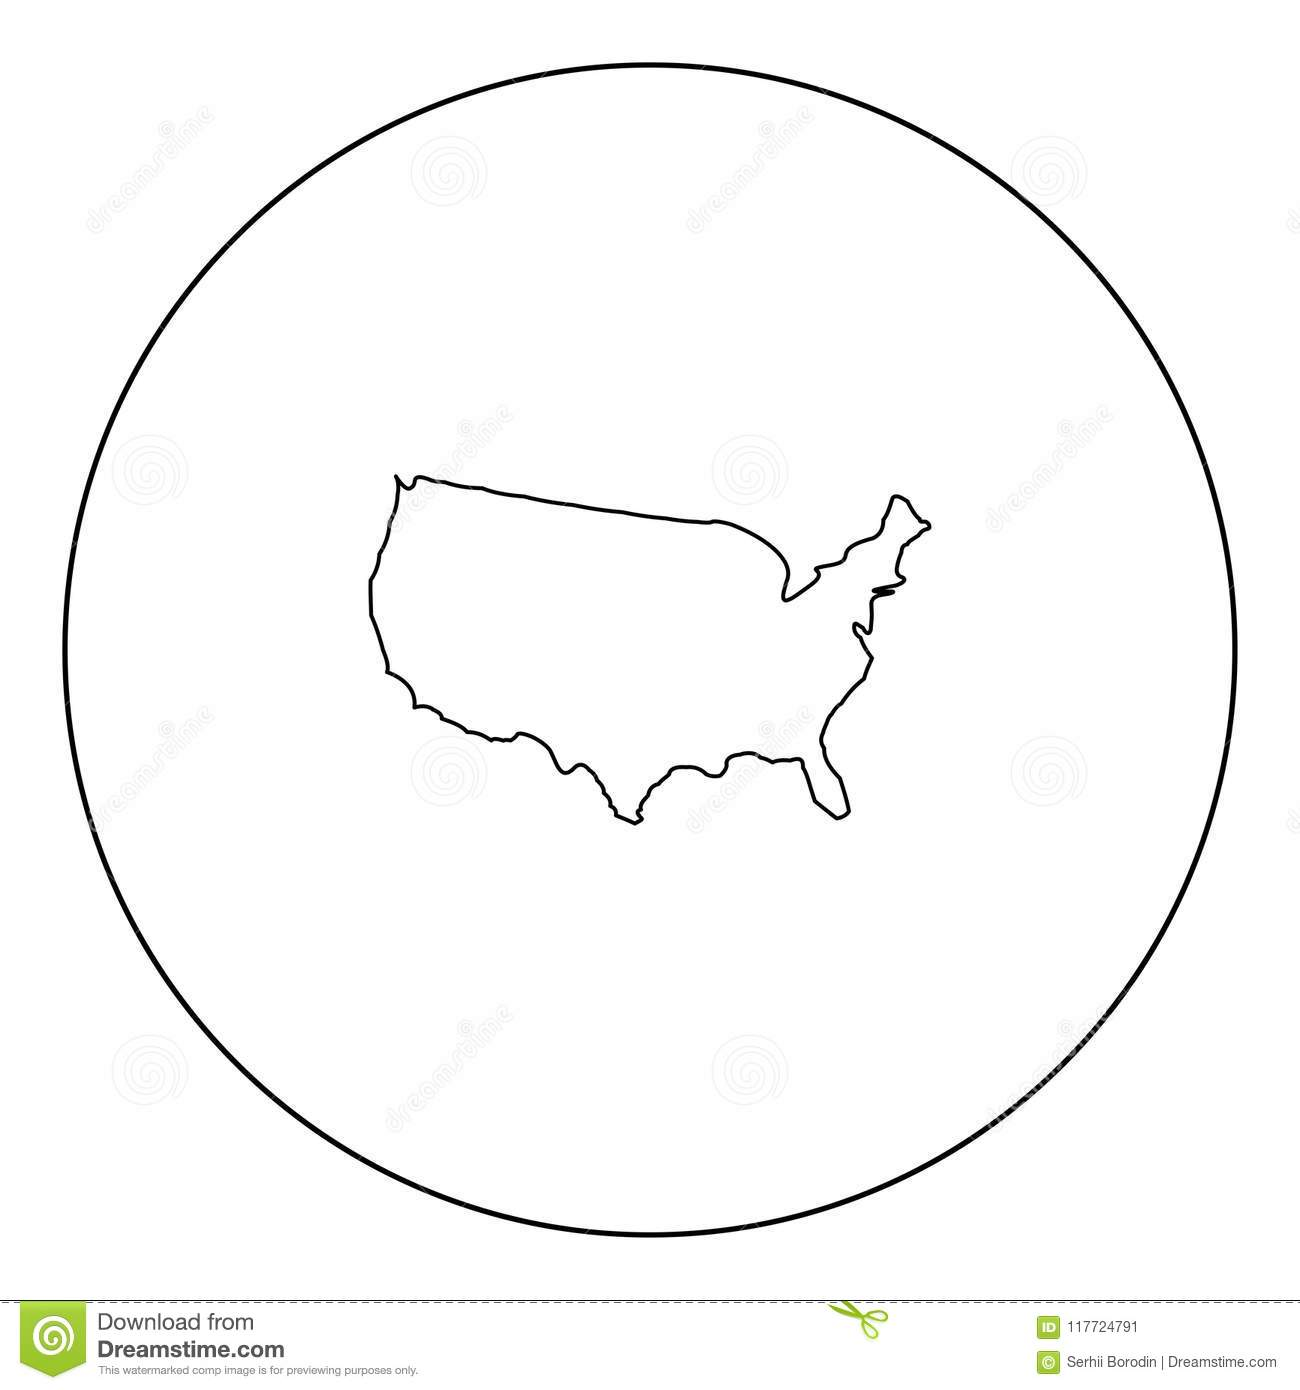 Map Of America Icon Black Color In Circle Stock Vector ... Map Of America Outline on outline map poland, outline map south korea, color map of america, balkanization of america, contour map of america, simple outline of north america, outline map latvia, blank map of america, map of north america, latitude and longitude map of america, state map of america, agricultural map of america, outline south america map, printable outline of north america, insurance office of america, theme map of america, layout map of america, coloring pages of america, puppeteers of america,